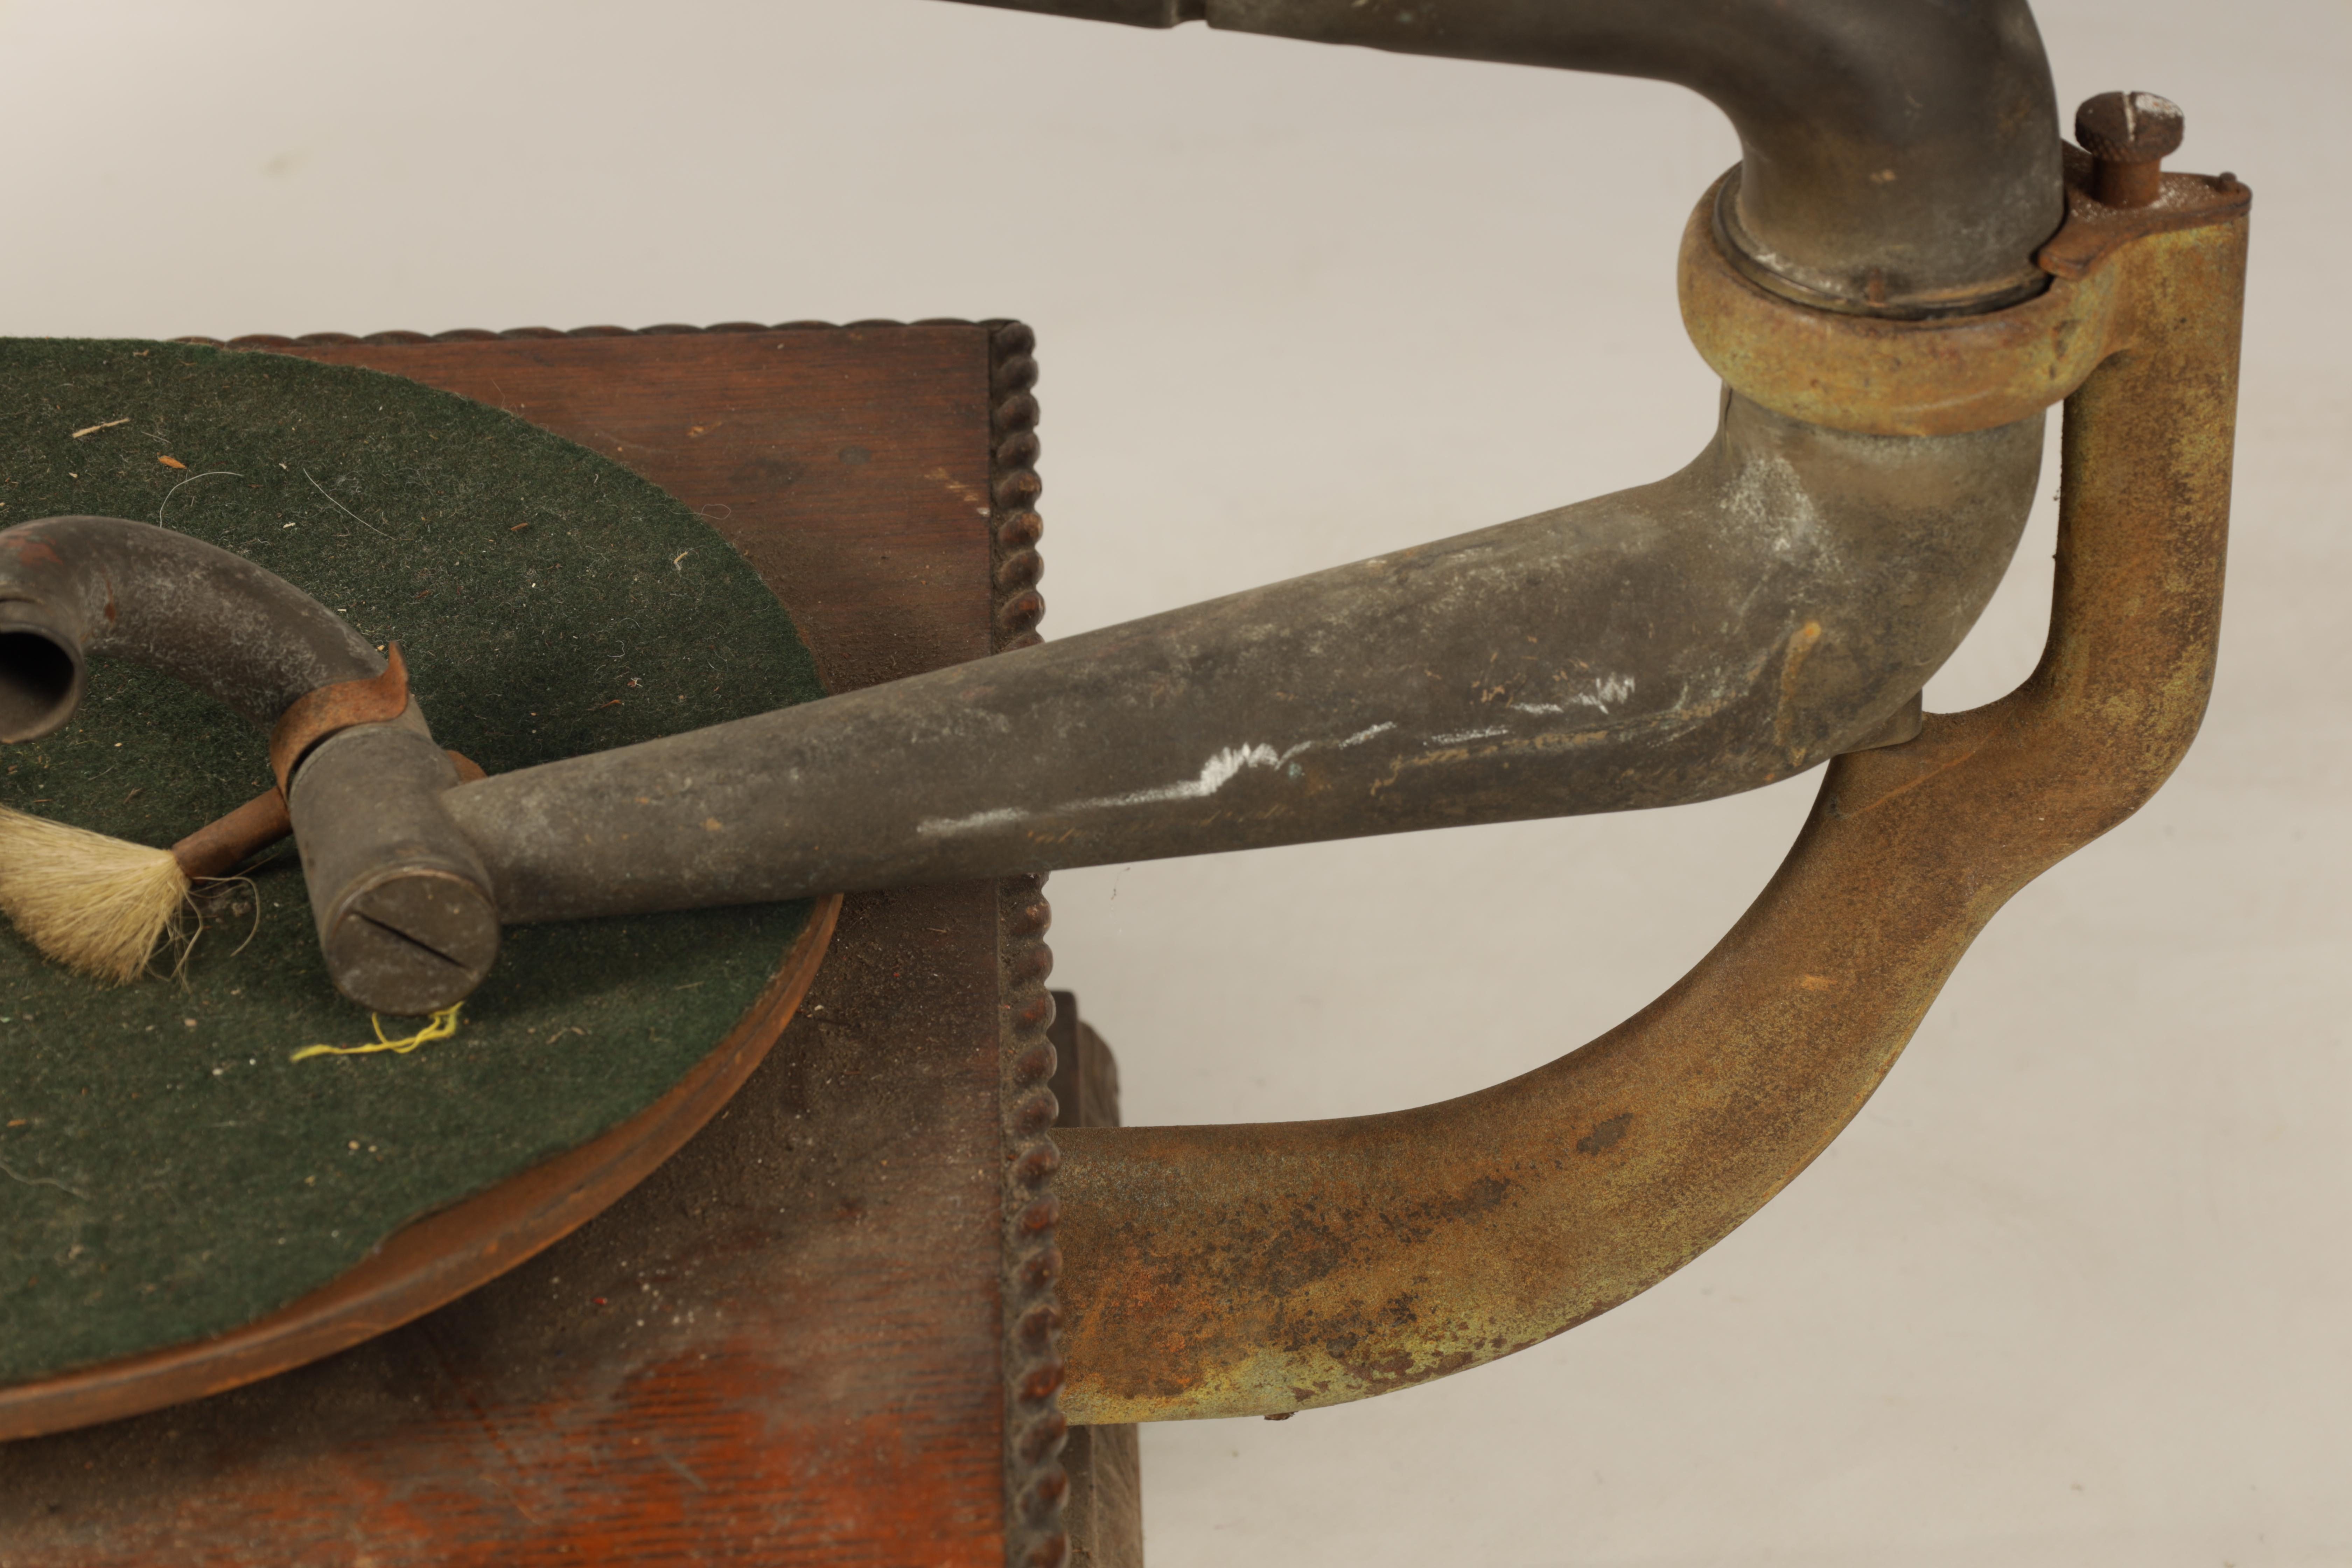 AN EARLY 20TH CENTURY OAK CASED HORN GRAMOPHONE, BY THE GRAMOPHONE & TYPEWRITER LTD having a - Image 4 of 8